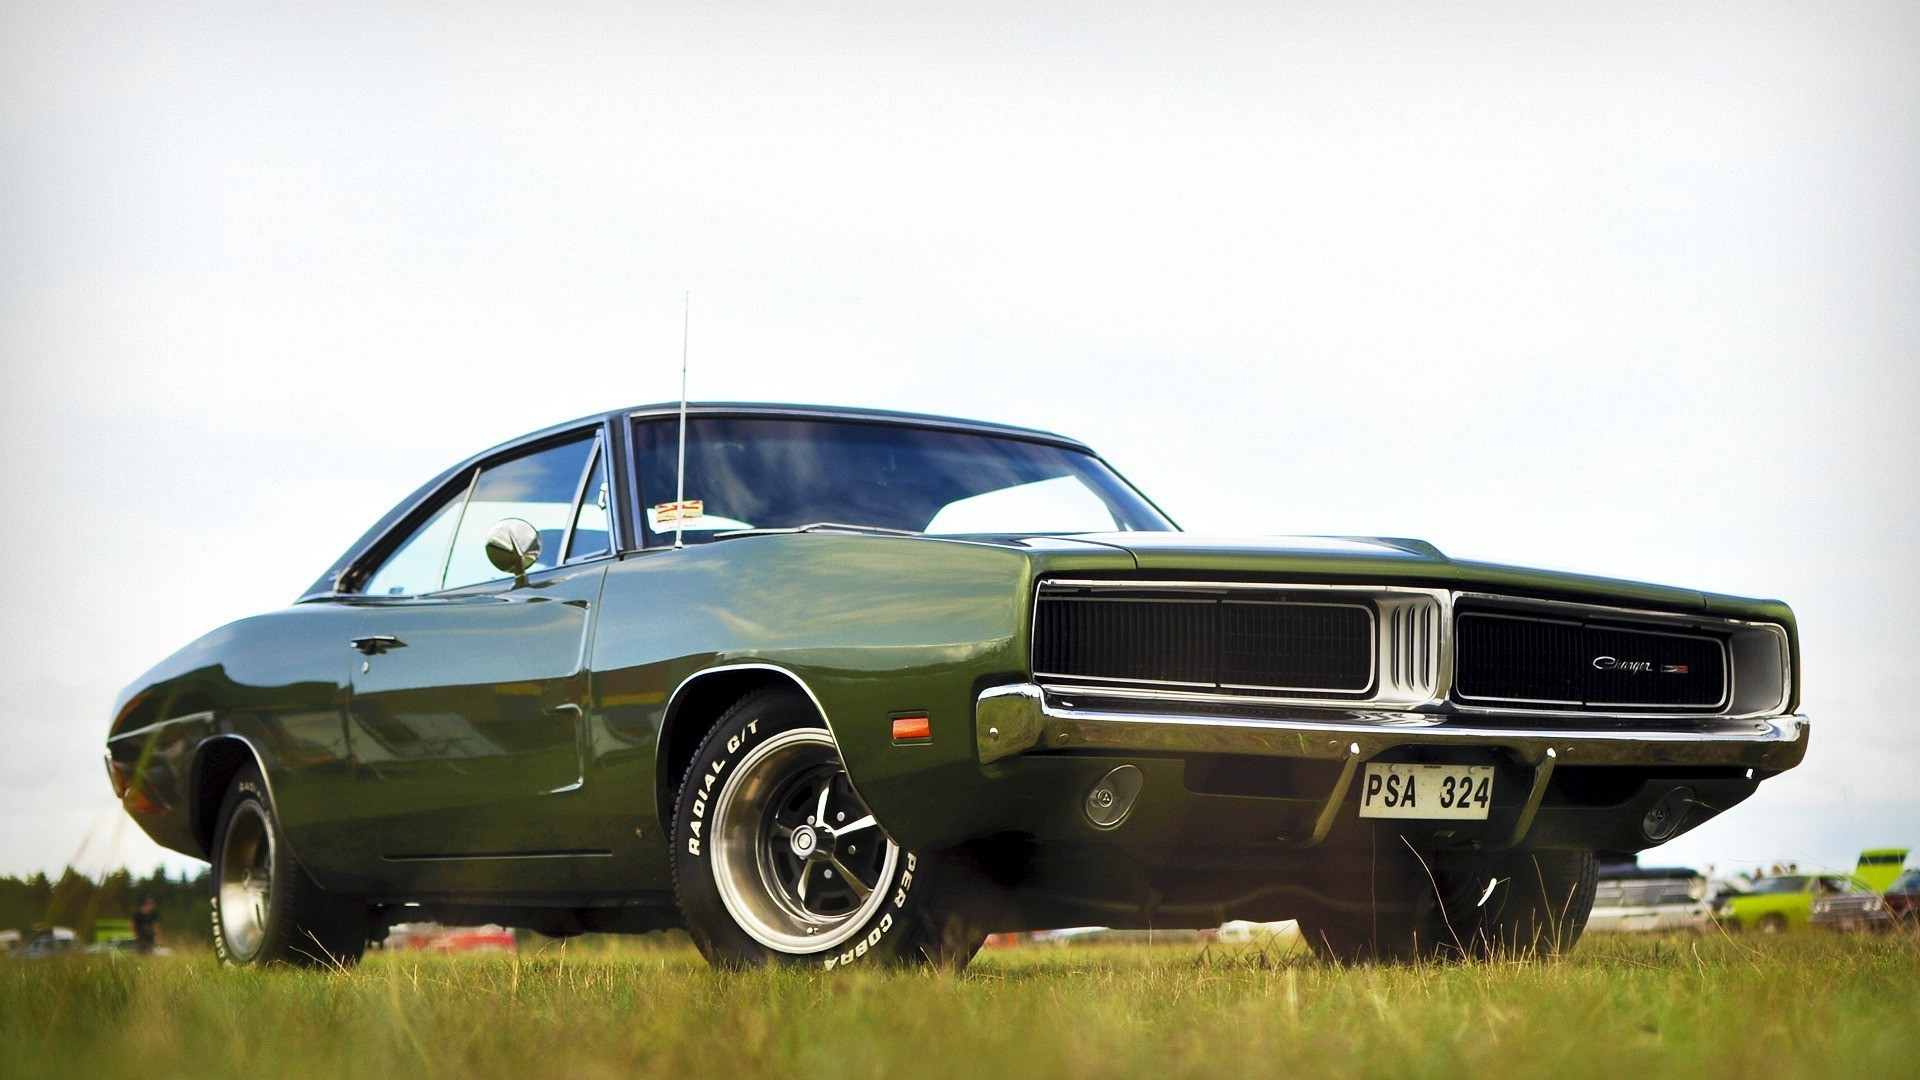 Dodge-charger-automobiles-cars-lowangle-shot-1920x1080-charger-automobiles-cars-lowangle-shot-wallpaper-wpc9204317